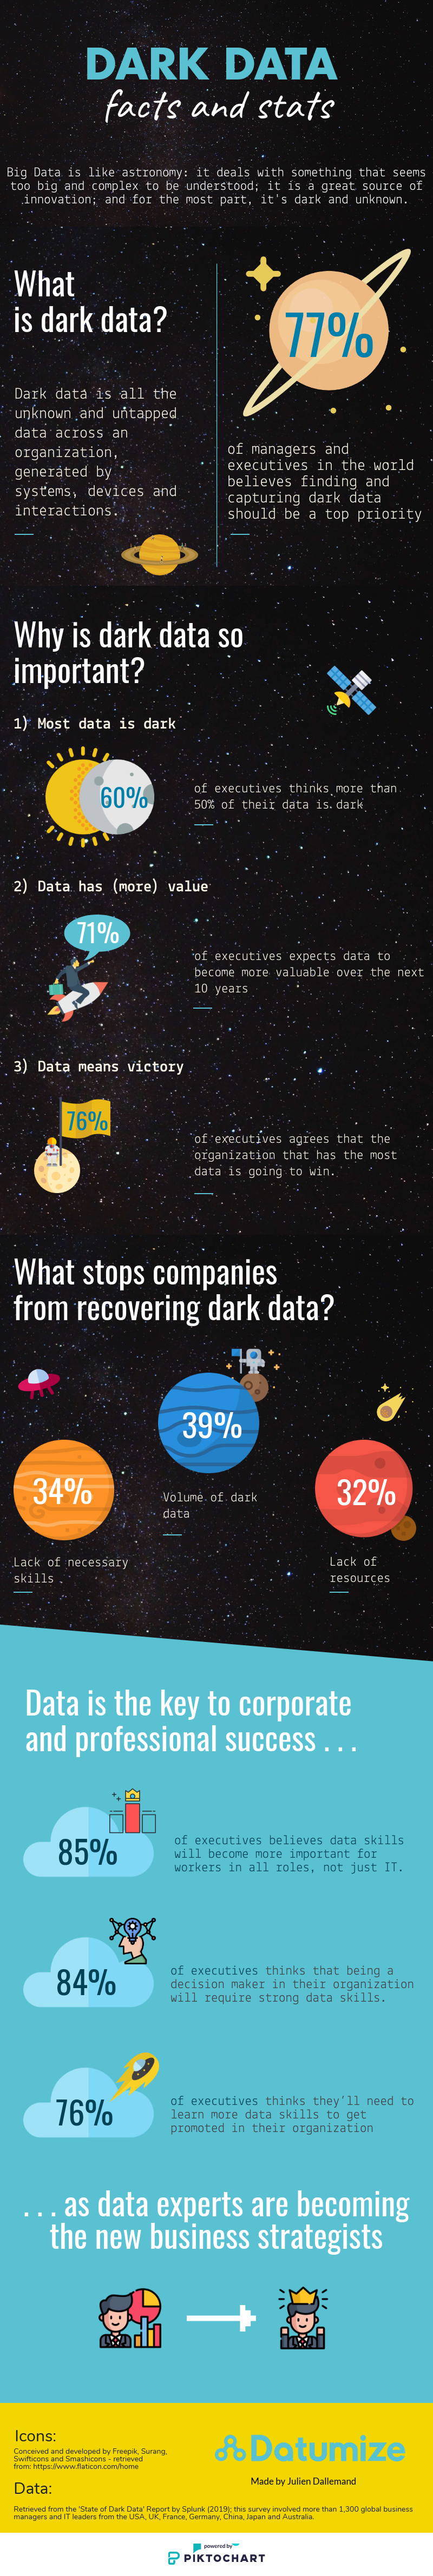 dark data infographic